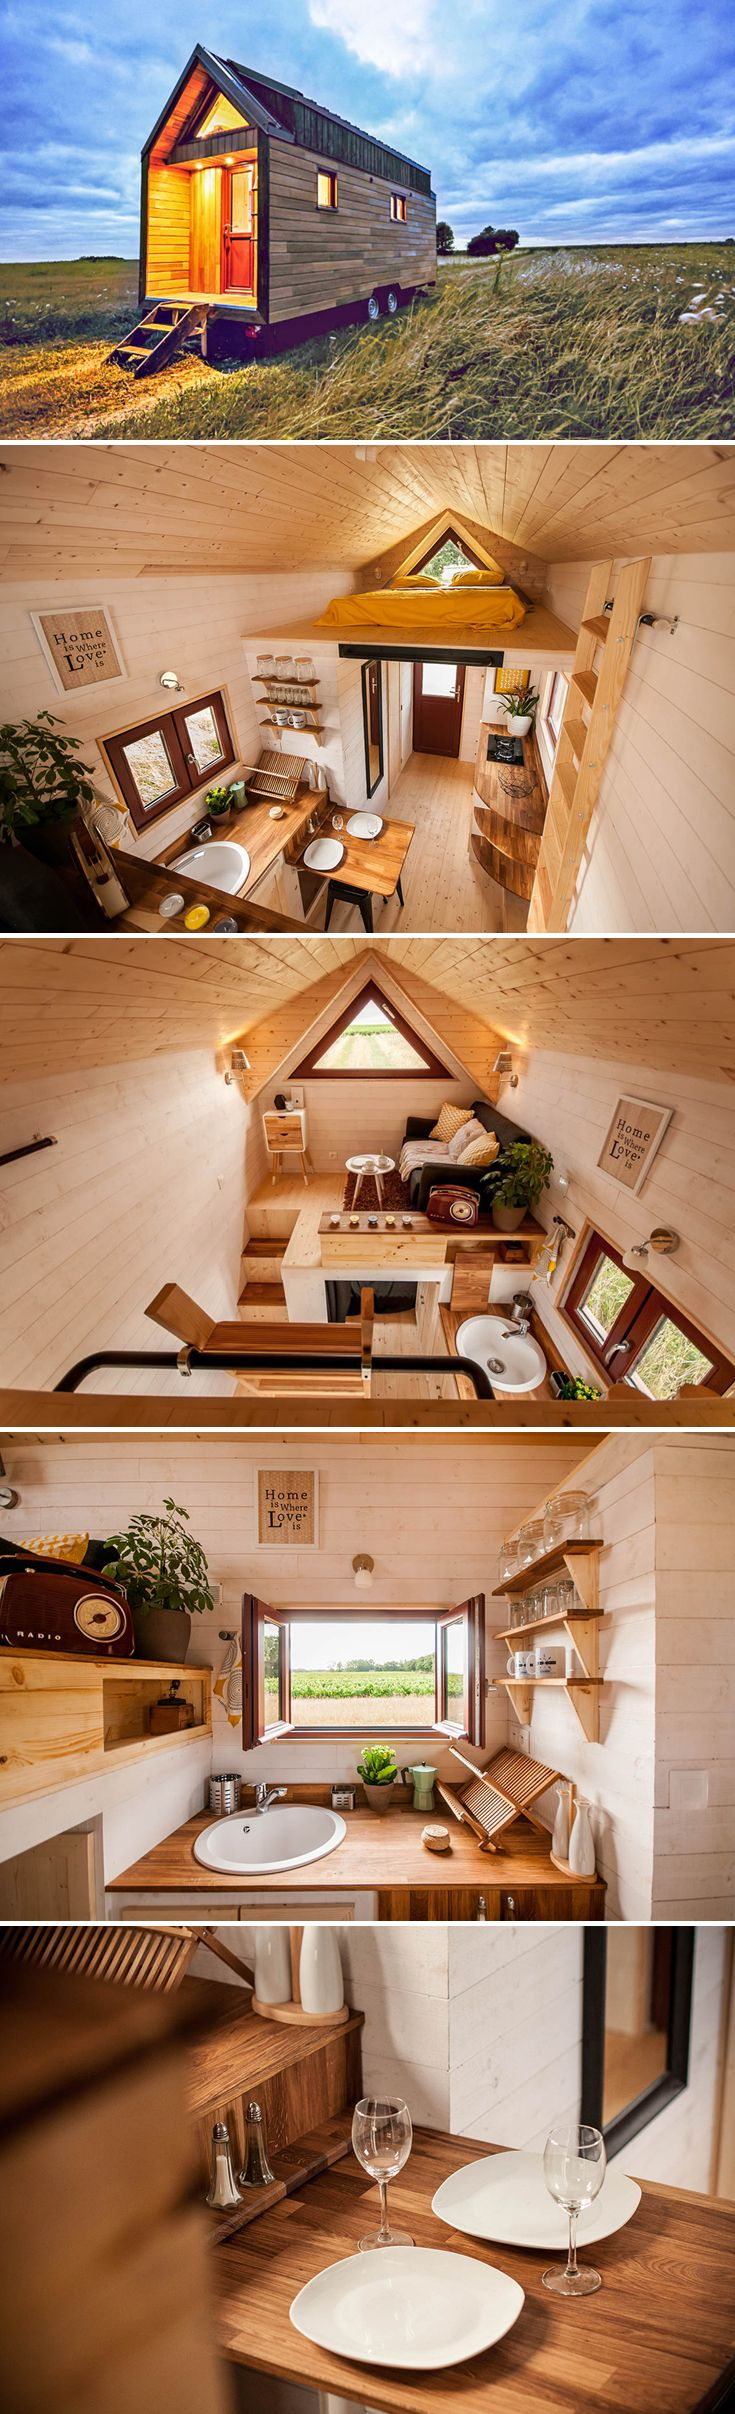 2114 best LittleTiny Houses images on Pinterest Tiny living